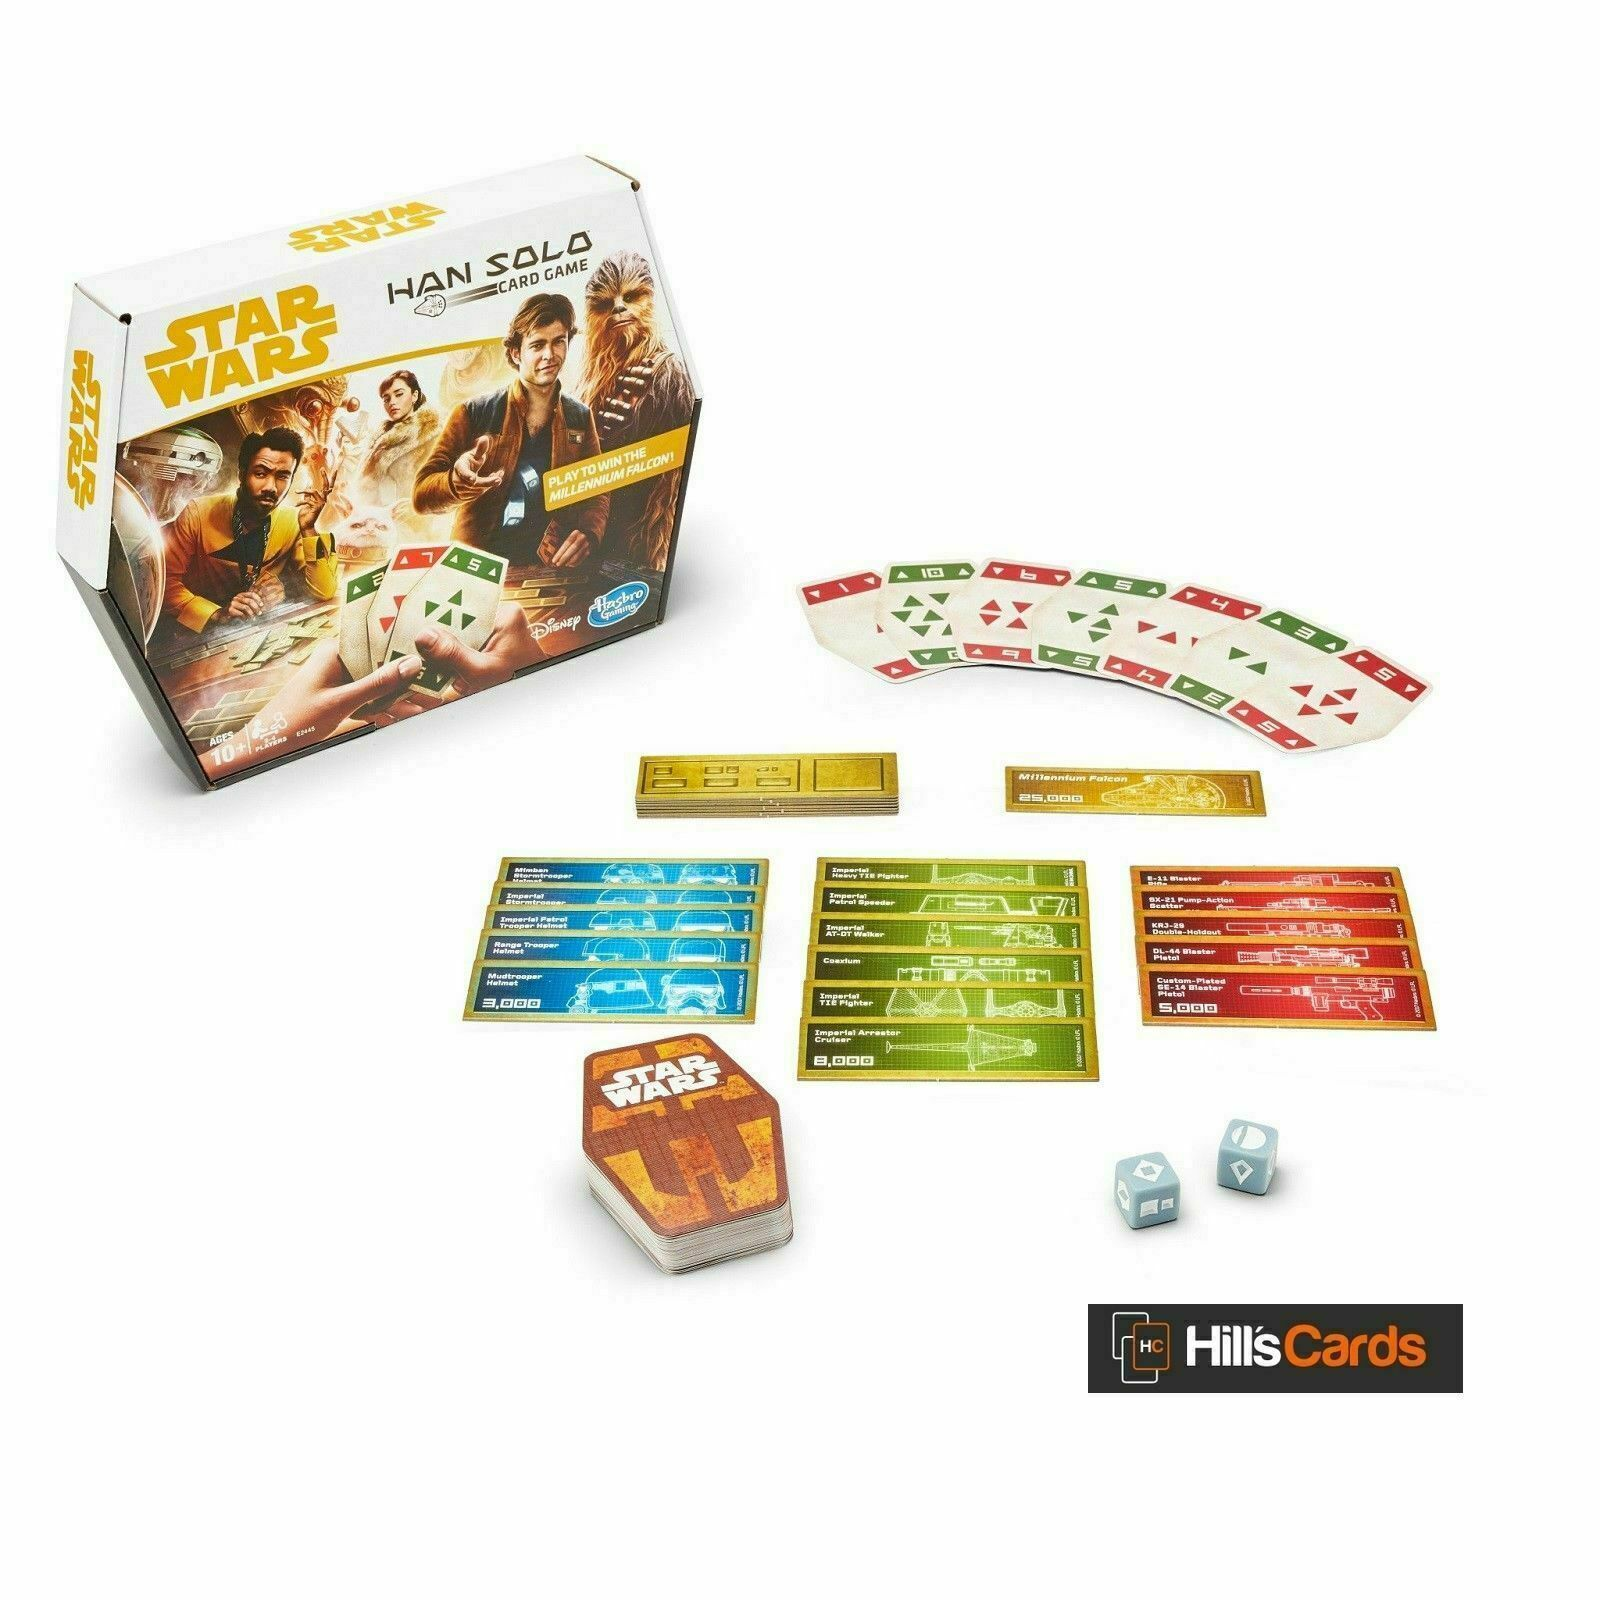 Star Wars Han Solo Card Game - $19.26